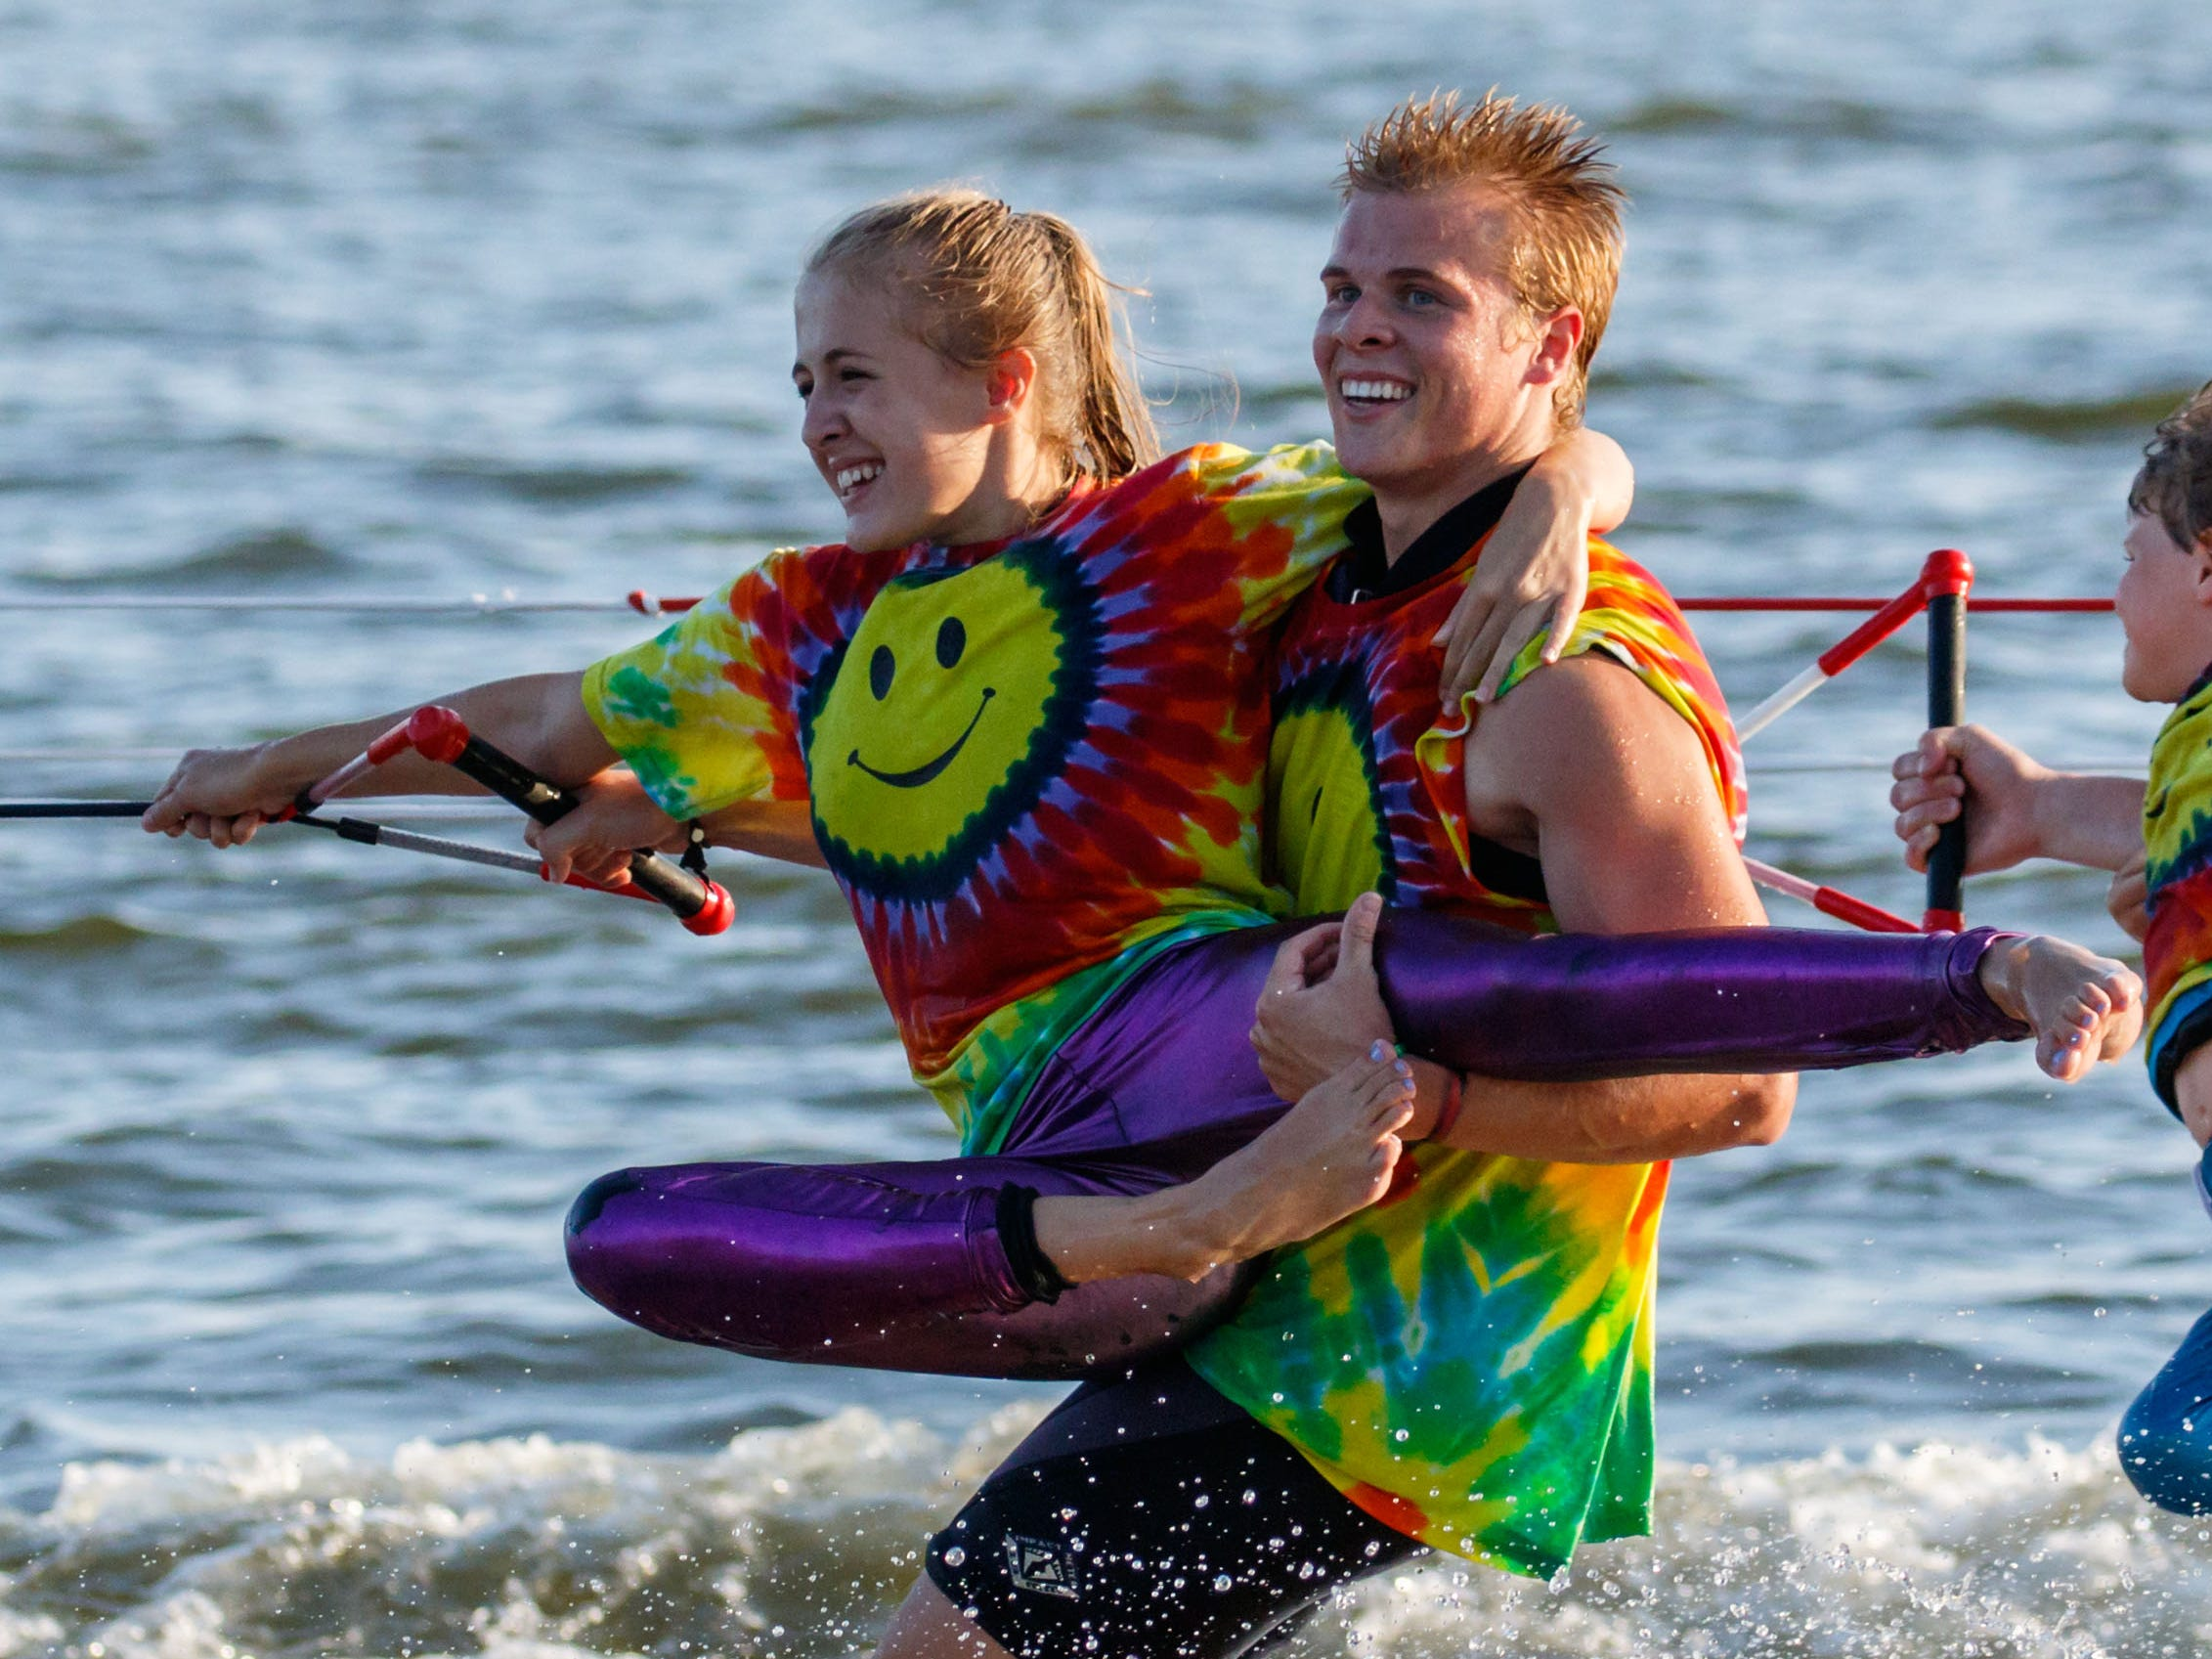 Abby Sinitz of Pewaukee and Jake Moeller of Muskego perform a doubles routine during the Pewaukee Lake Water Ski Club's weekly show at Lakefront Park on Thursday, August 2, 2018.